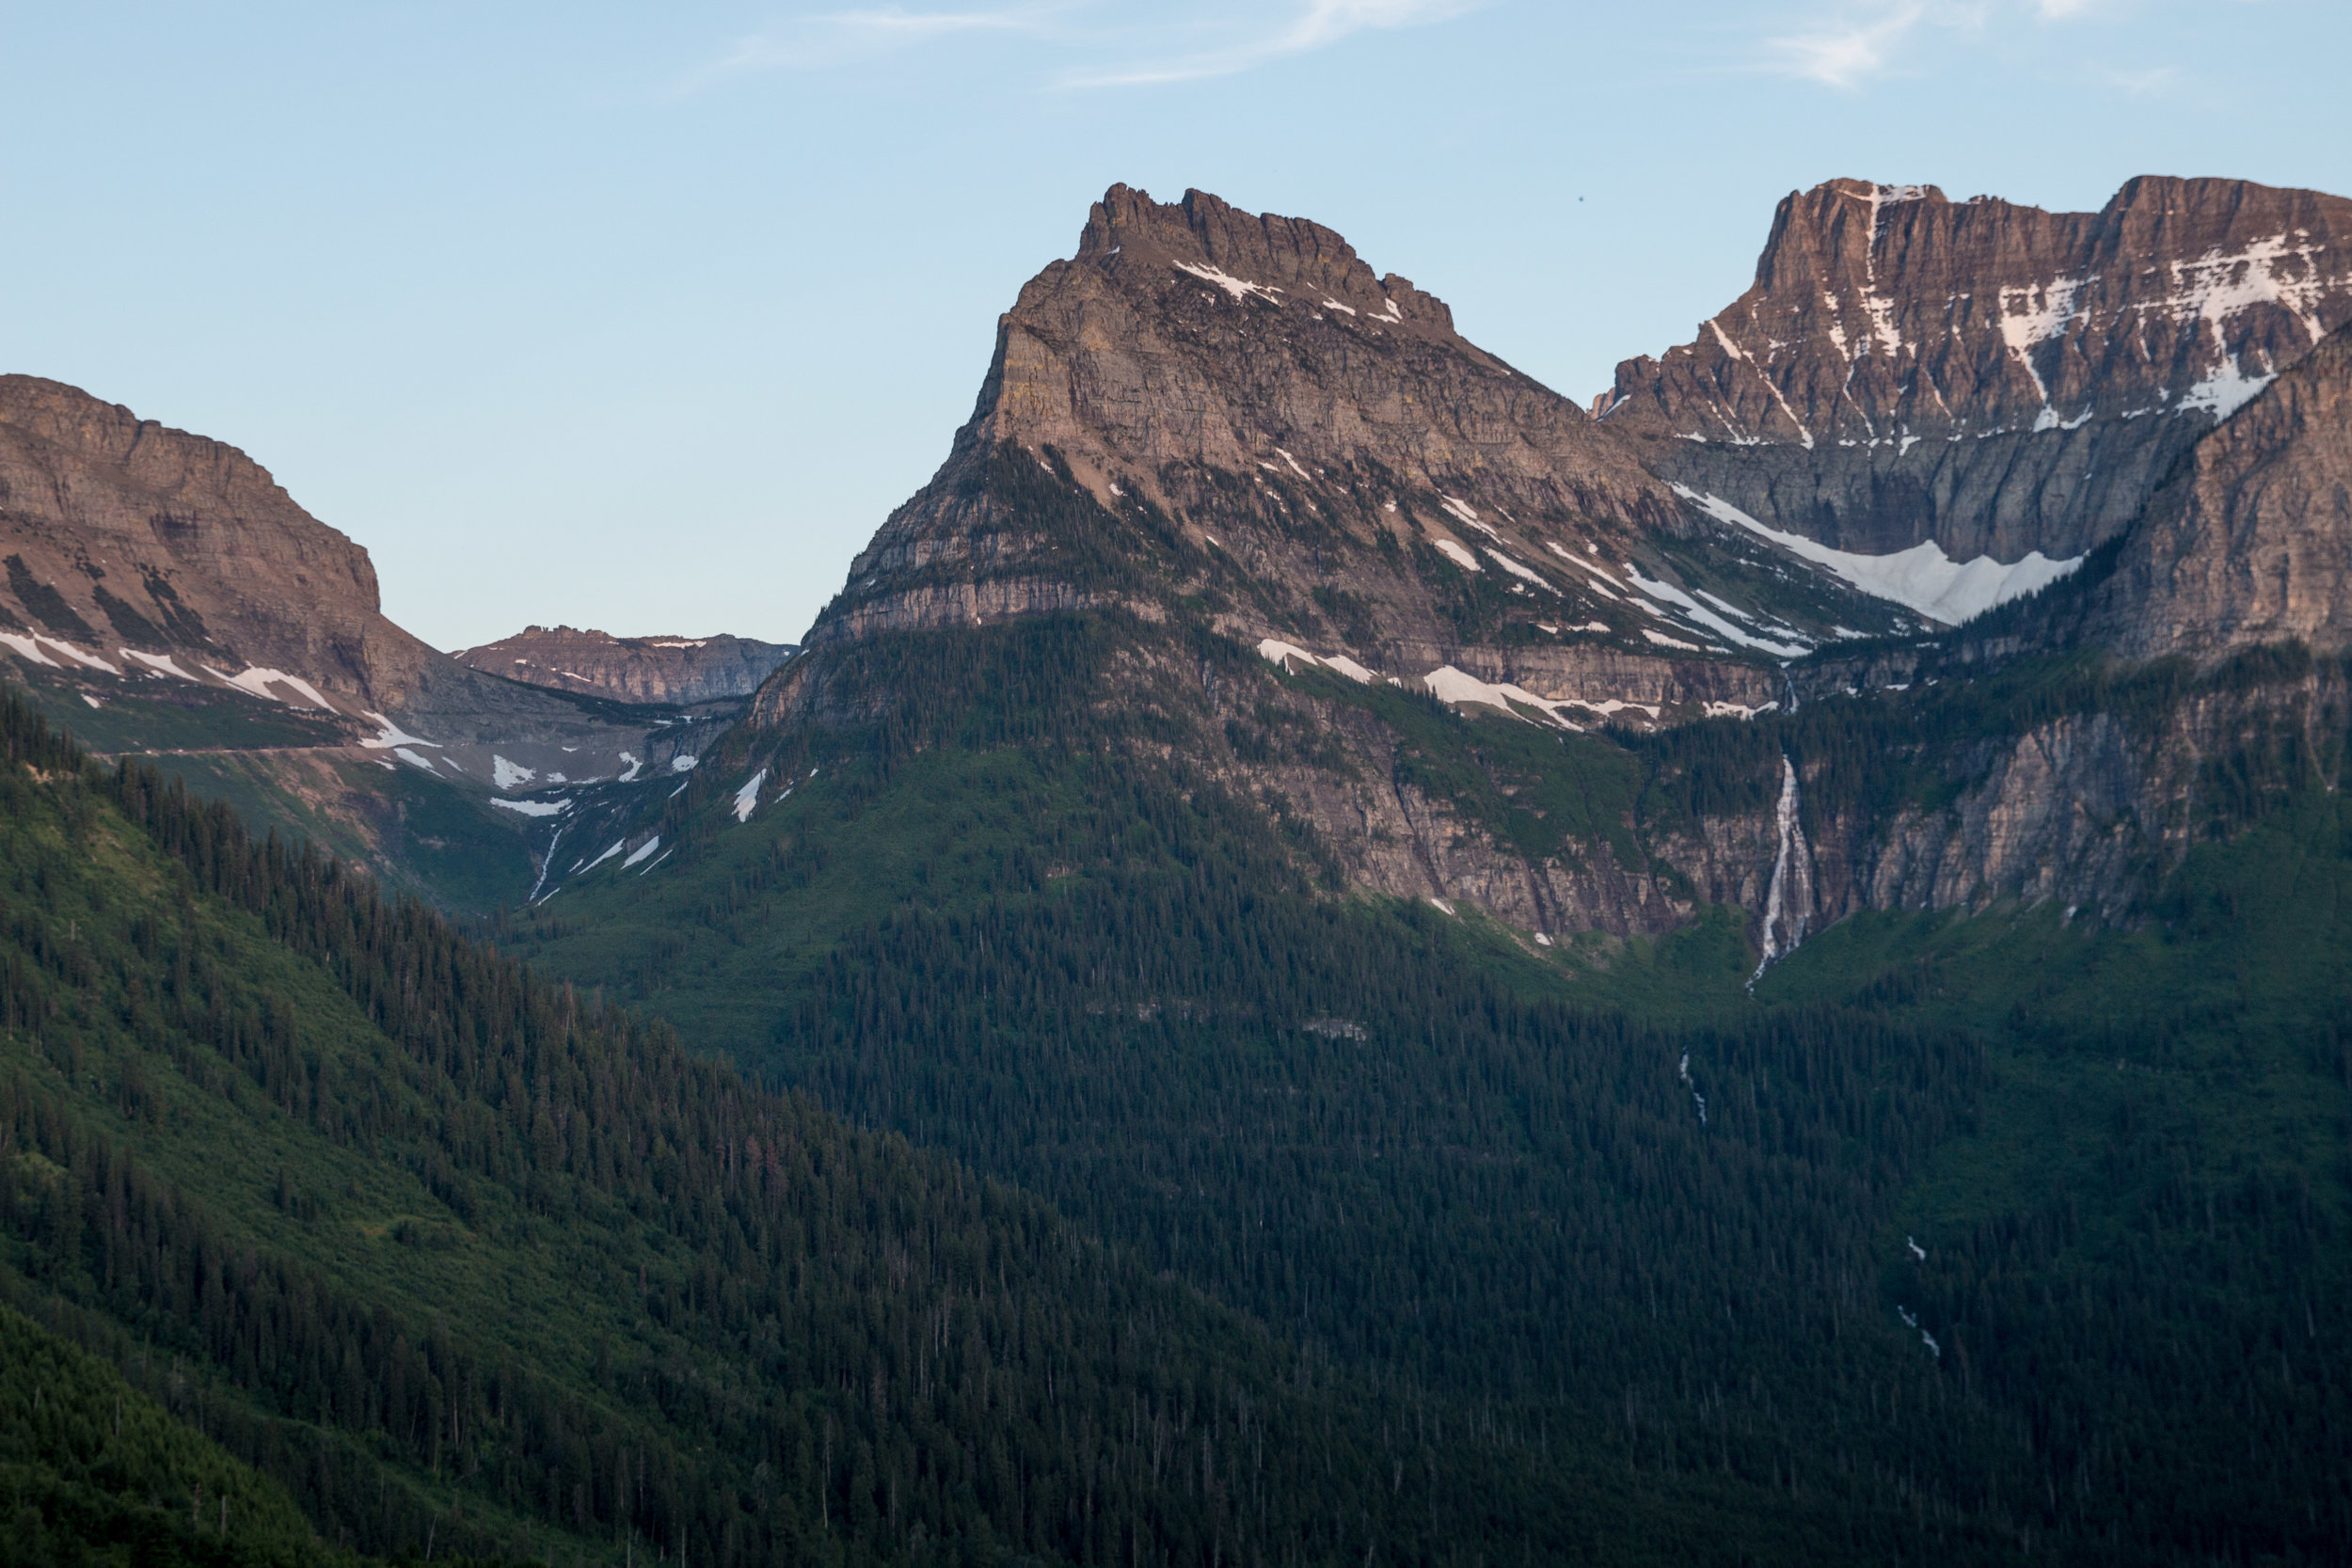 Going-To-The-Sun road views.